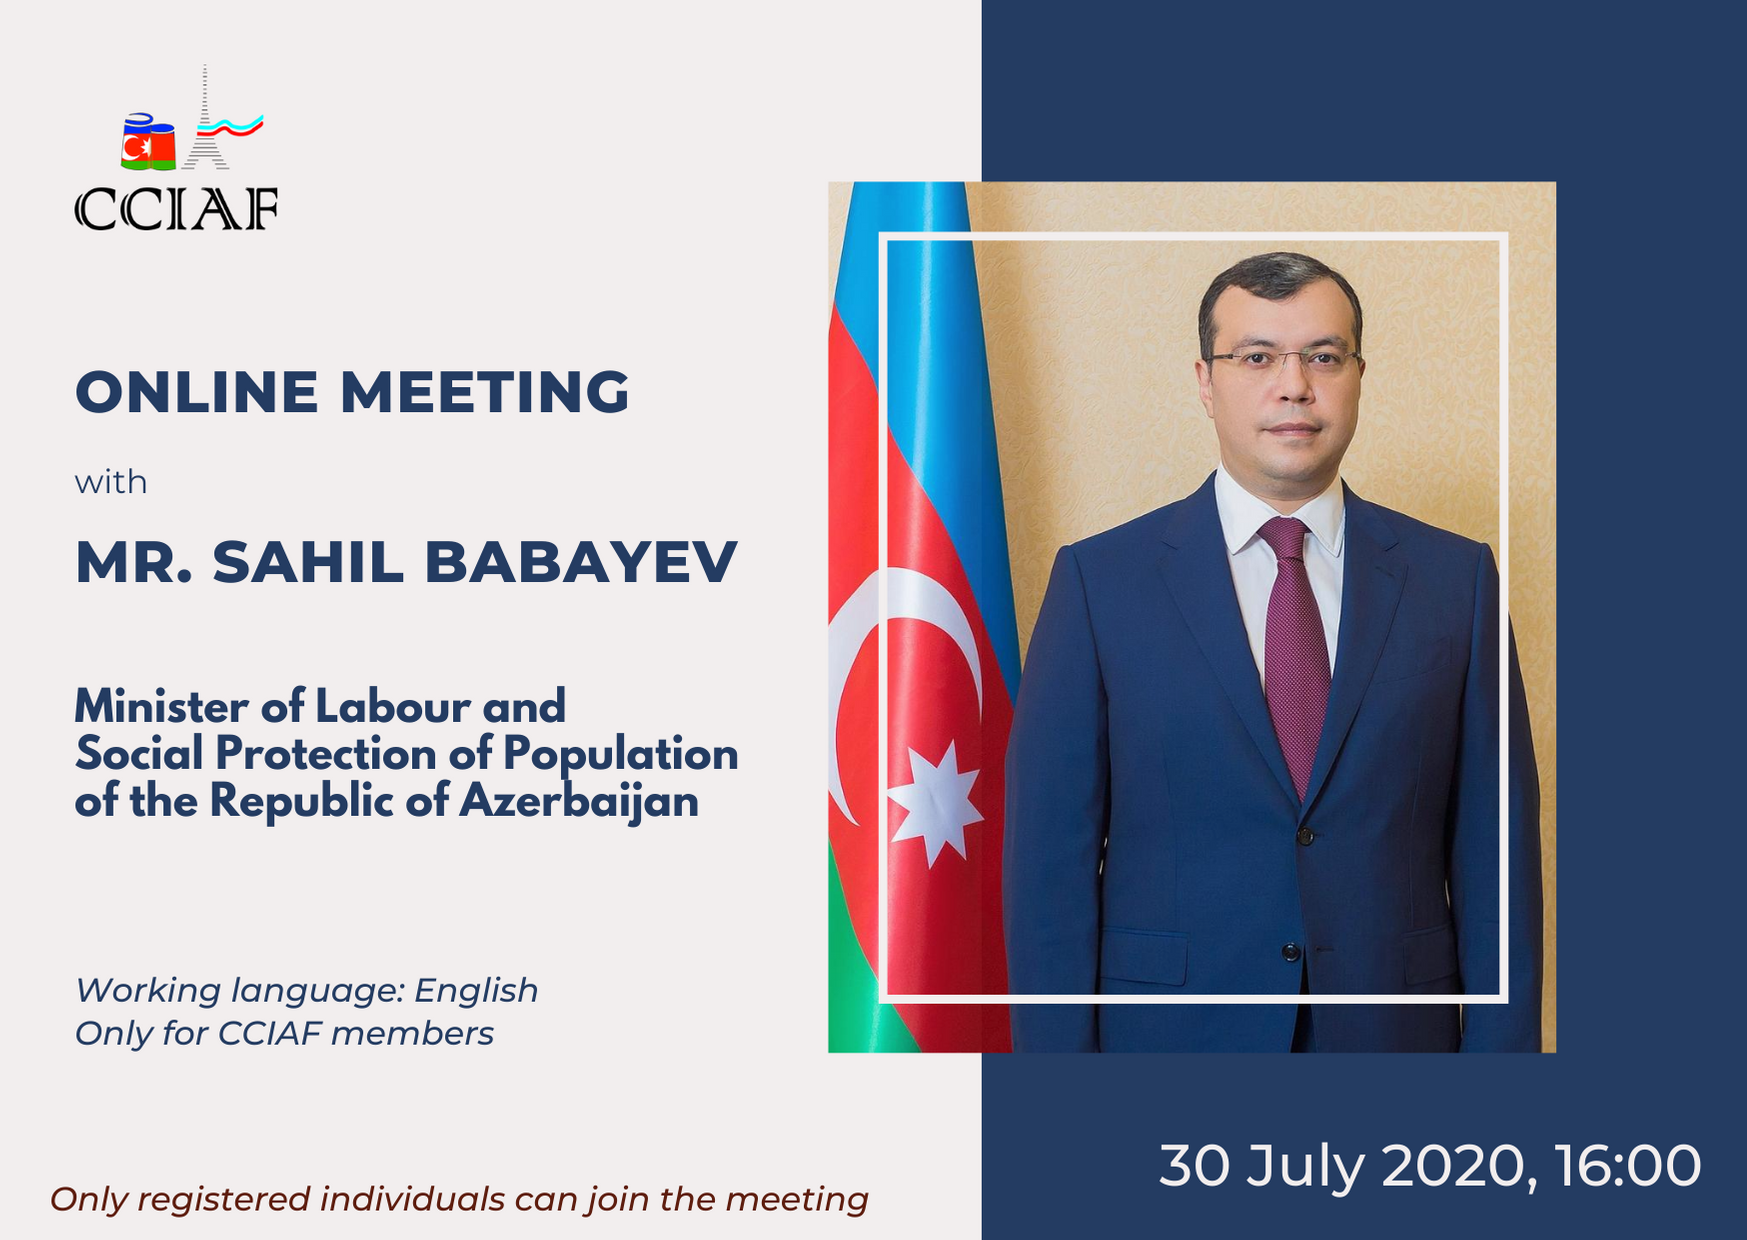 CCIAF held an online meeting with the Minister of Labour and Social Protection of Population of Azerbaijan